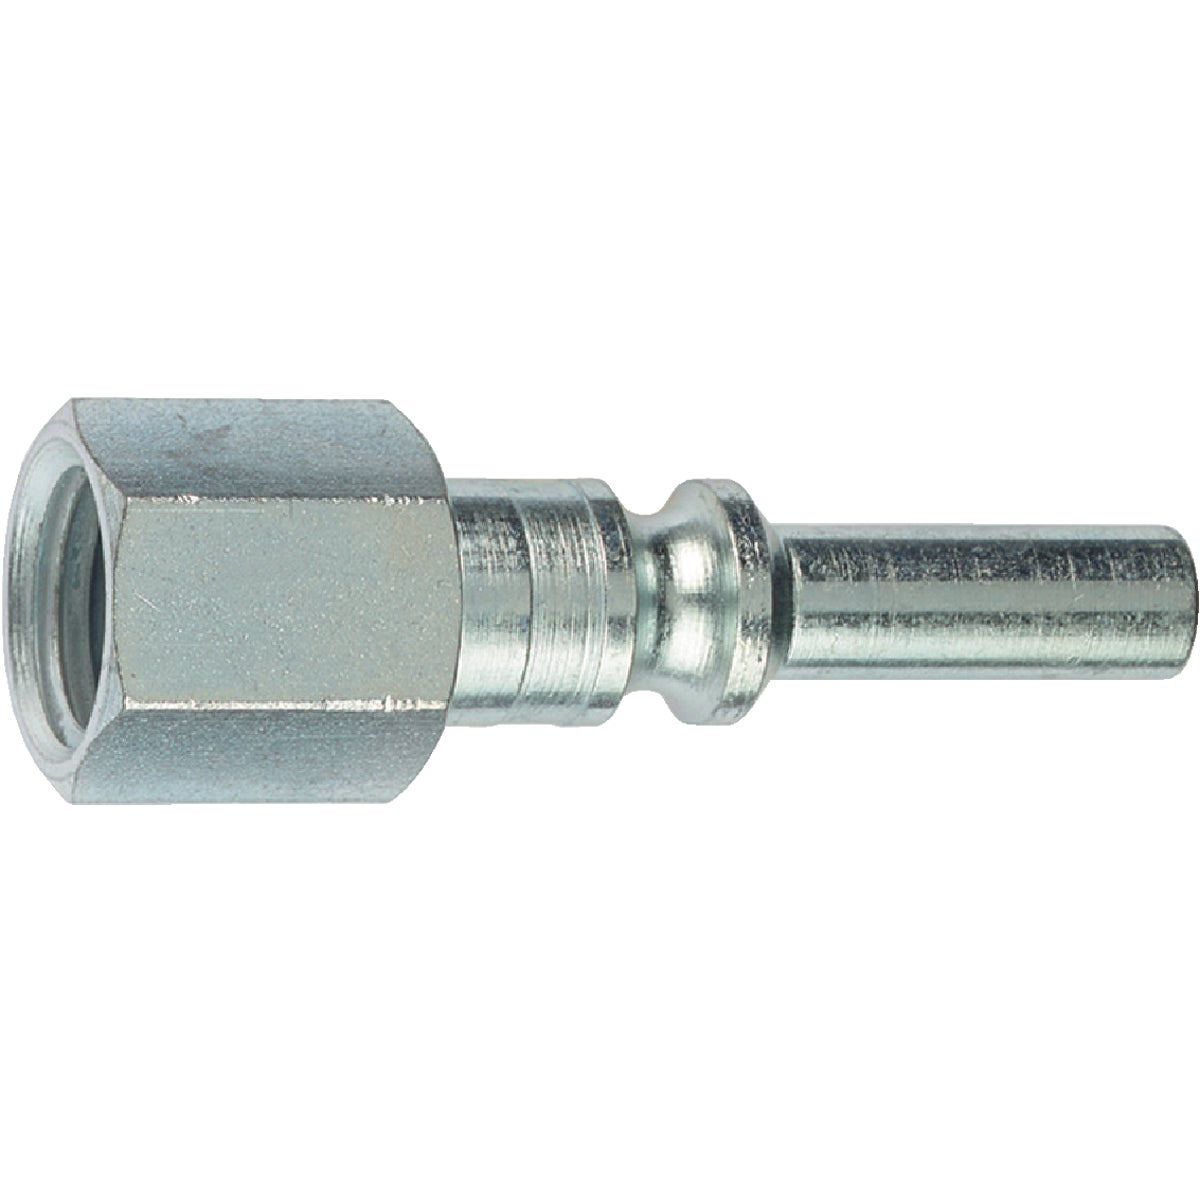 "1/4""LINC 1/4""FNPT PLUG - 12-435 by Plews  Lubrimatic"